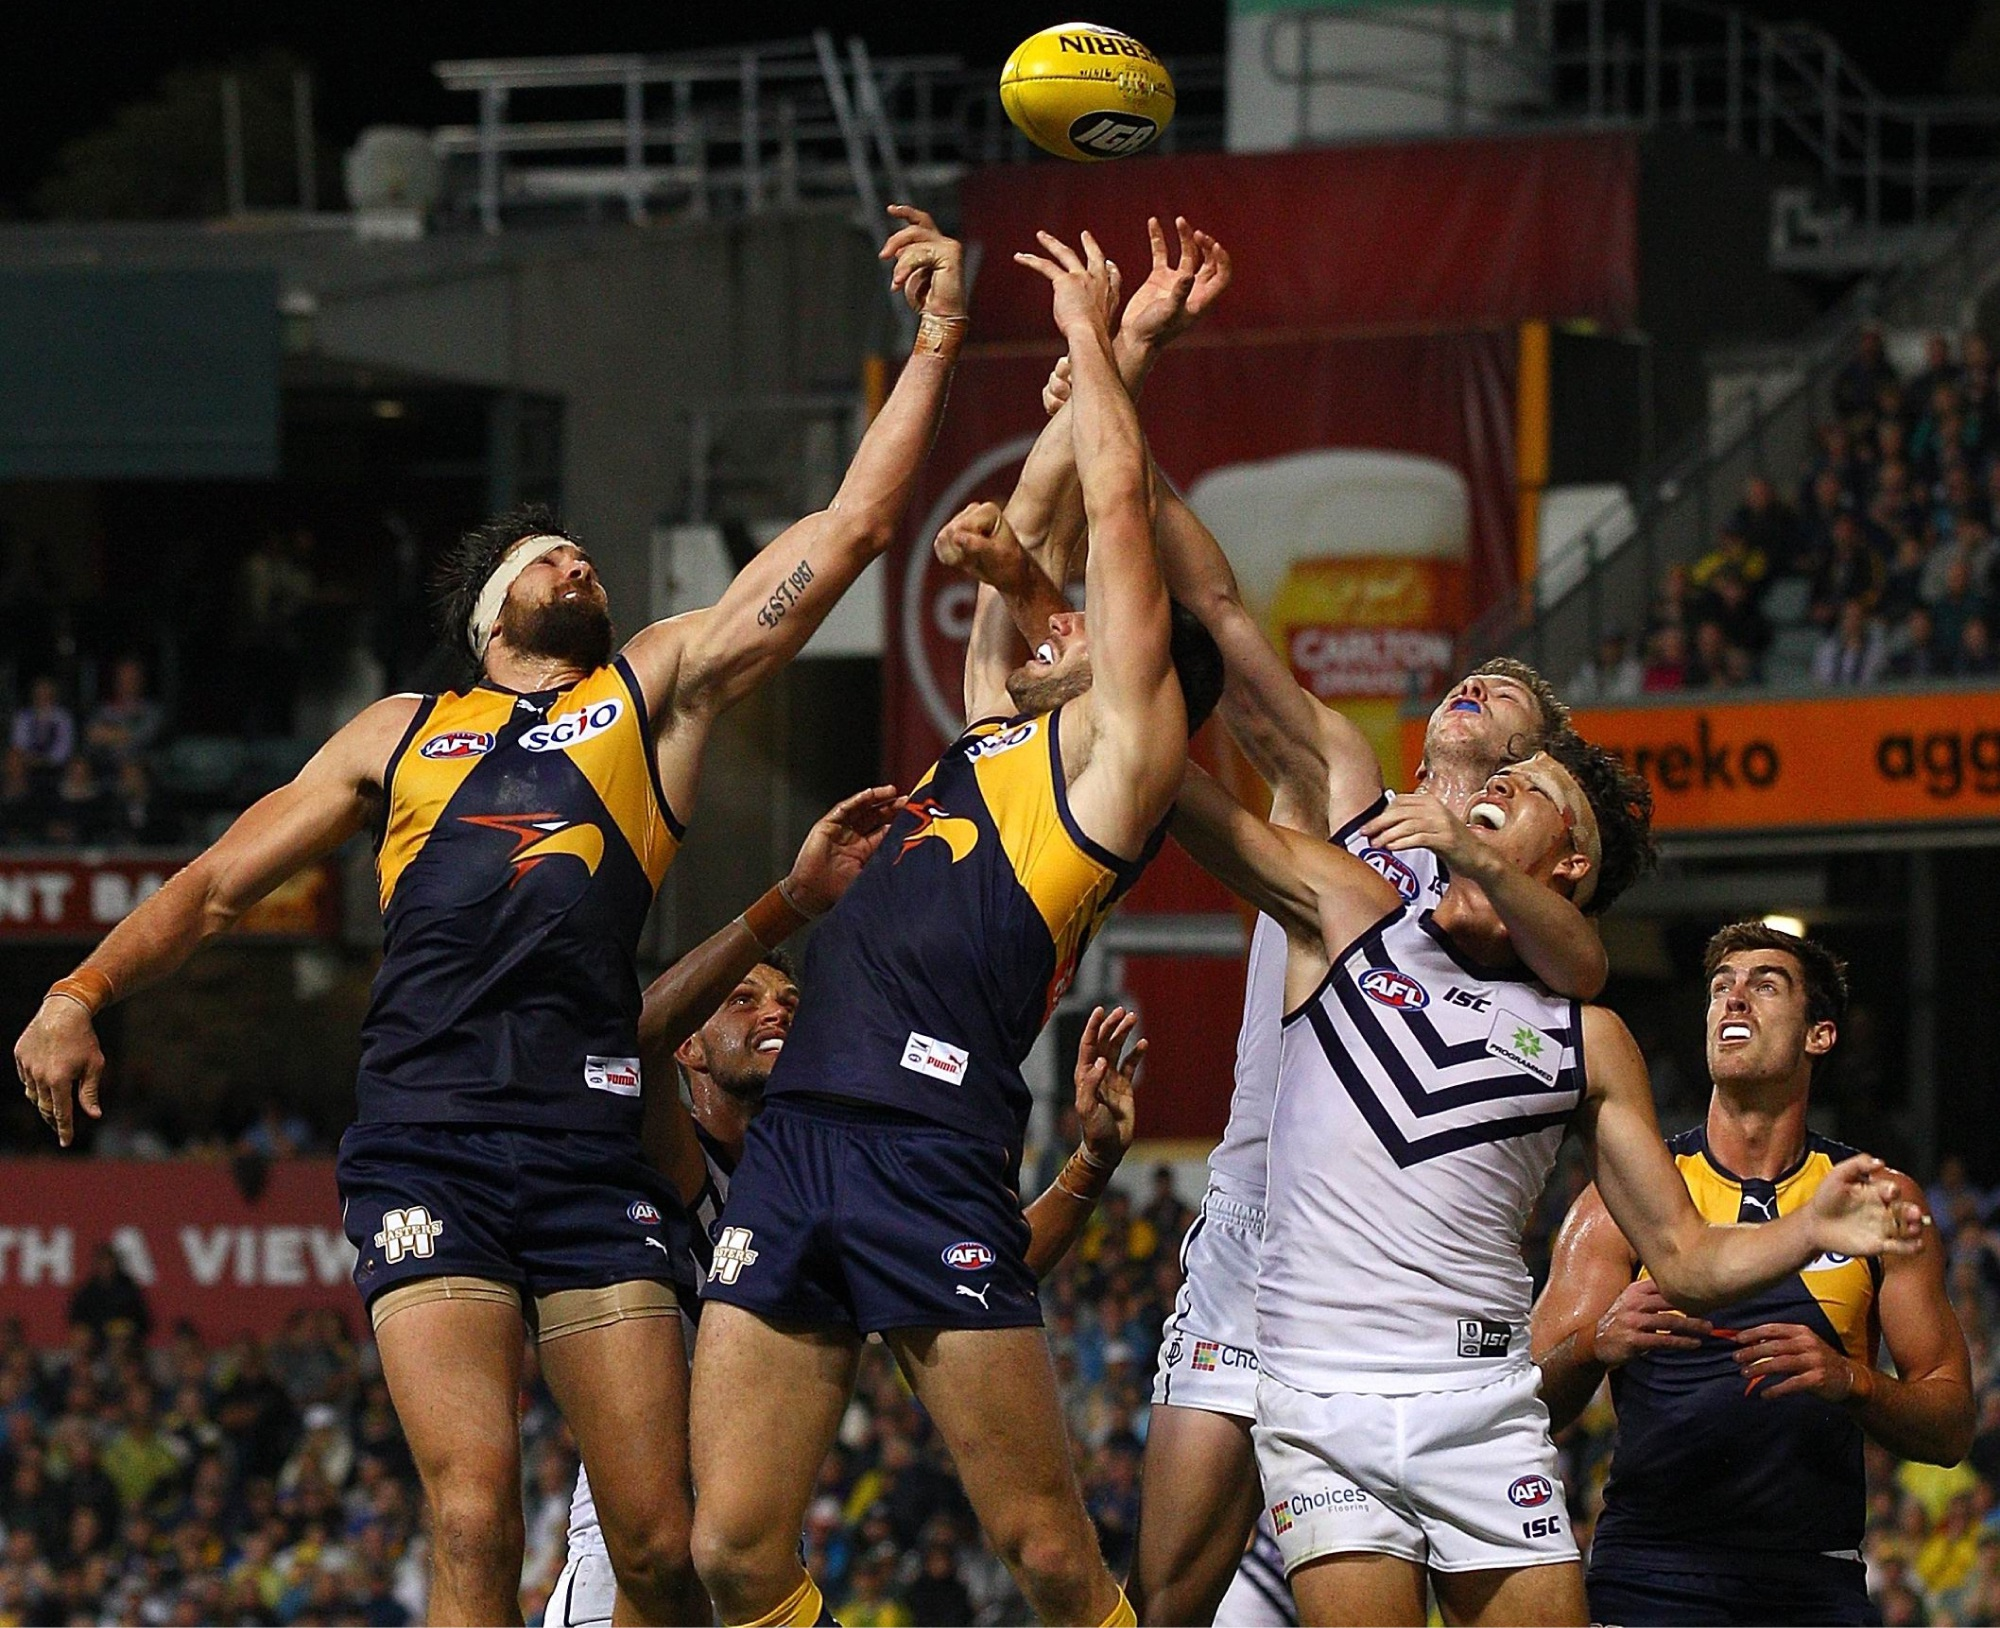 Just out of reach for Josh Kennedy as a pack stretches for the ball in the last Western Derby. Picture: Getty Images